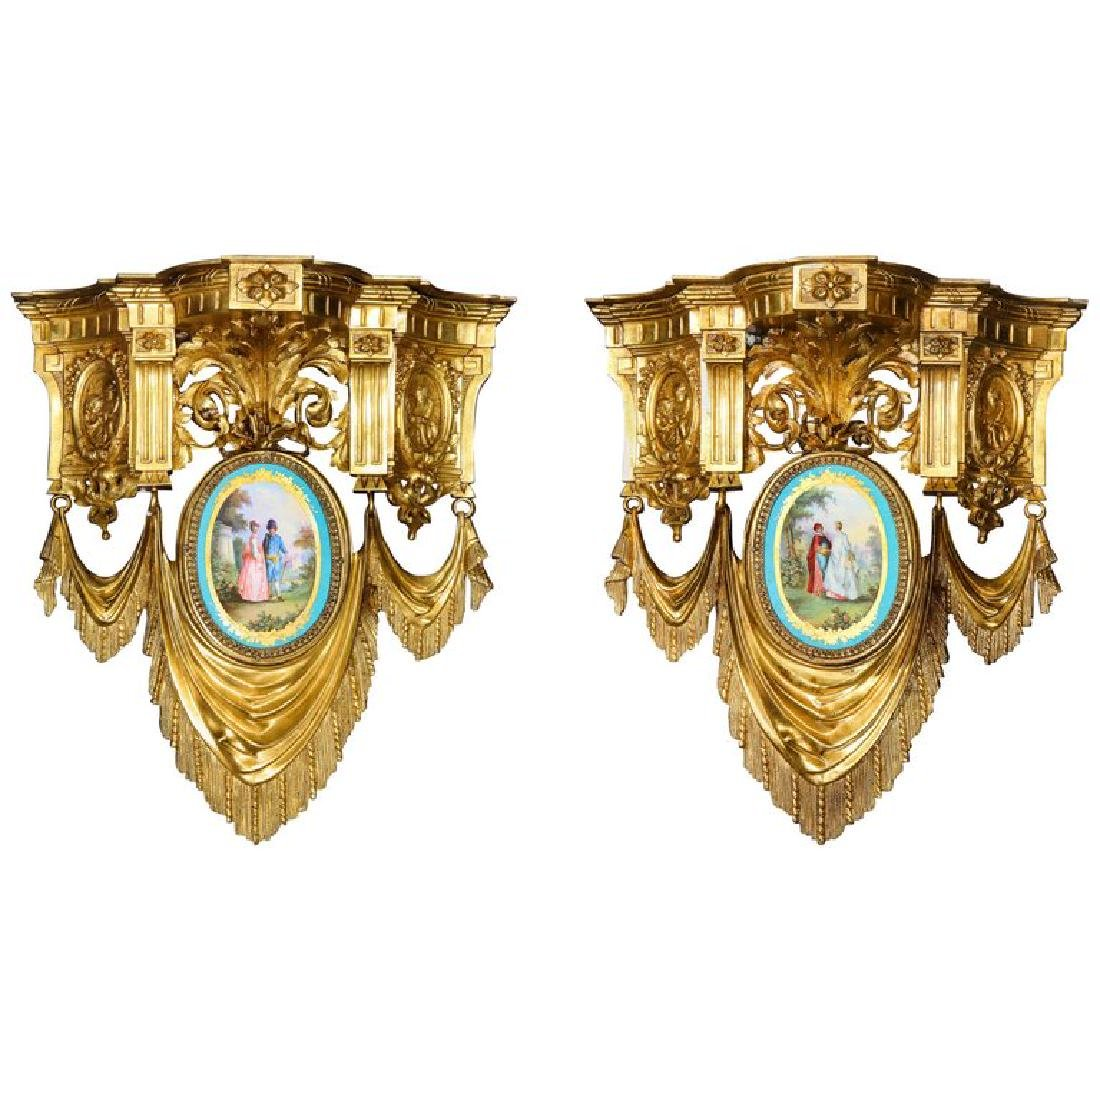 Pair of French Ormolu Bronze and Sevres Porcelain Wall